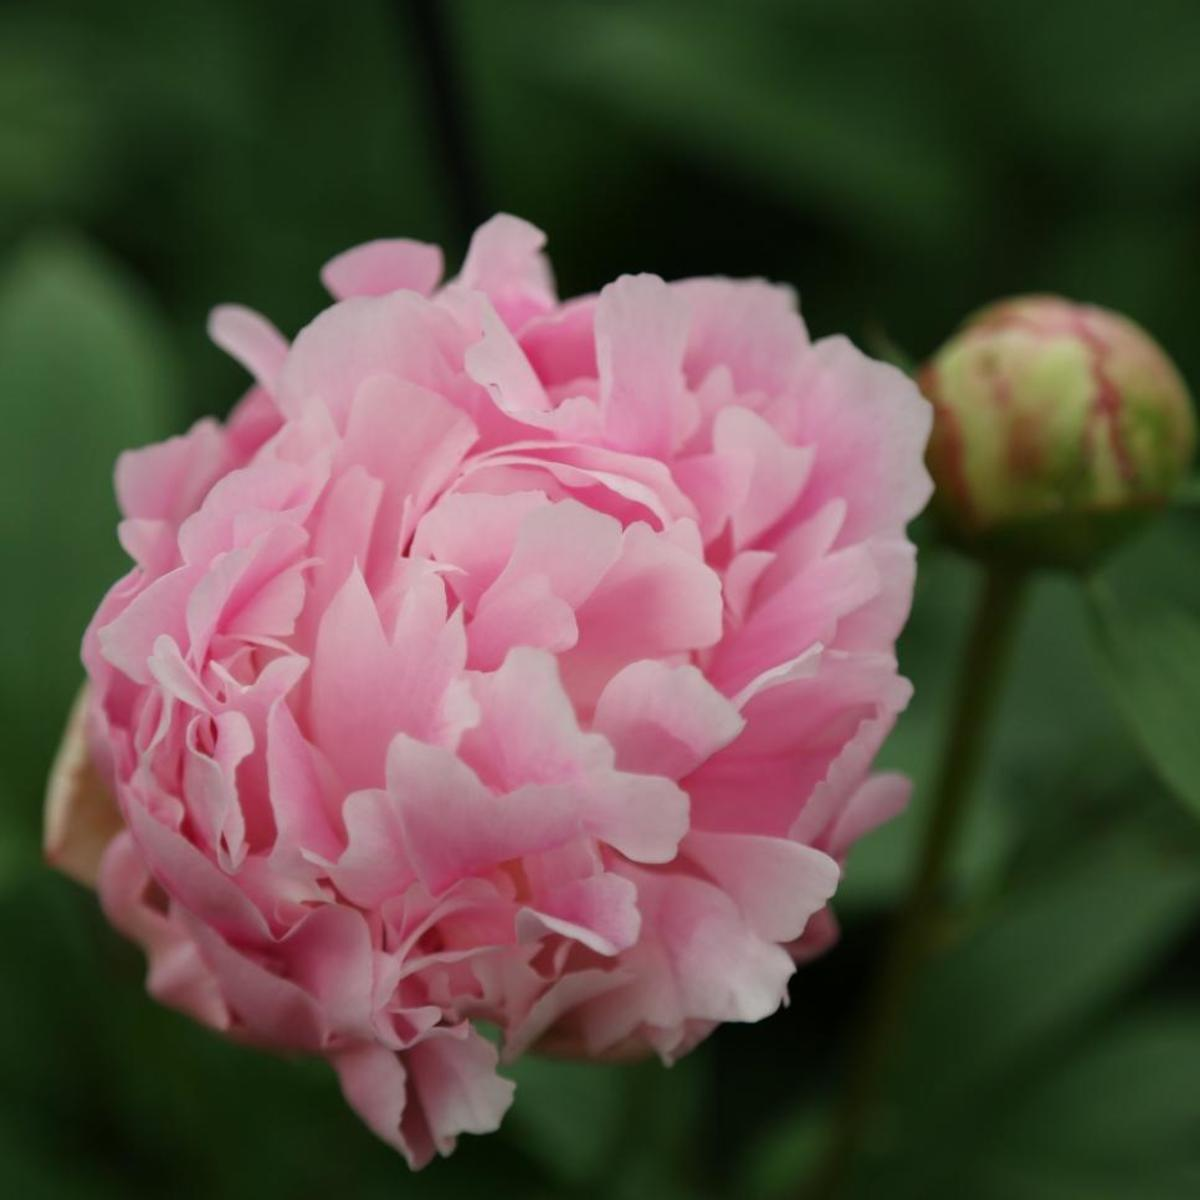 The Catherina Fontijin peony is a soft pink variety with rosette shaped flowers that fade to white pink with age.